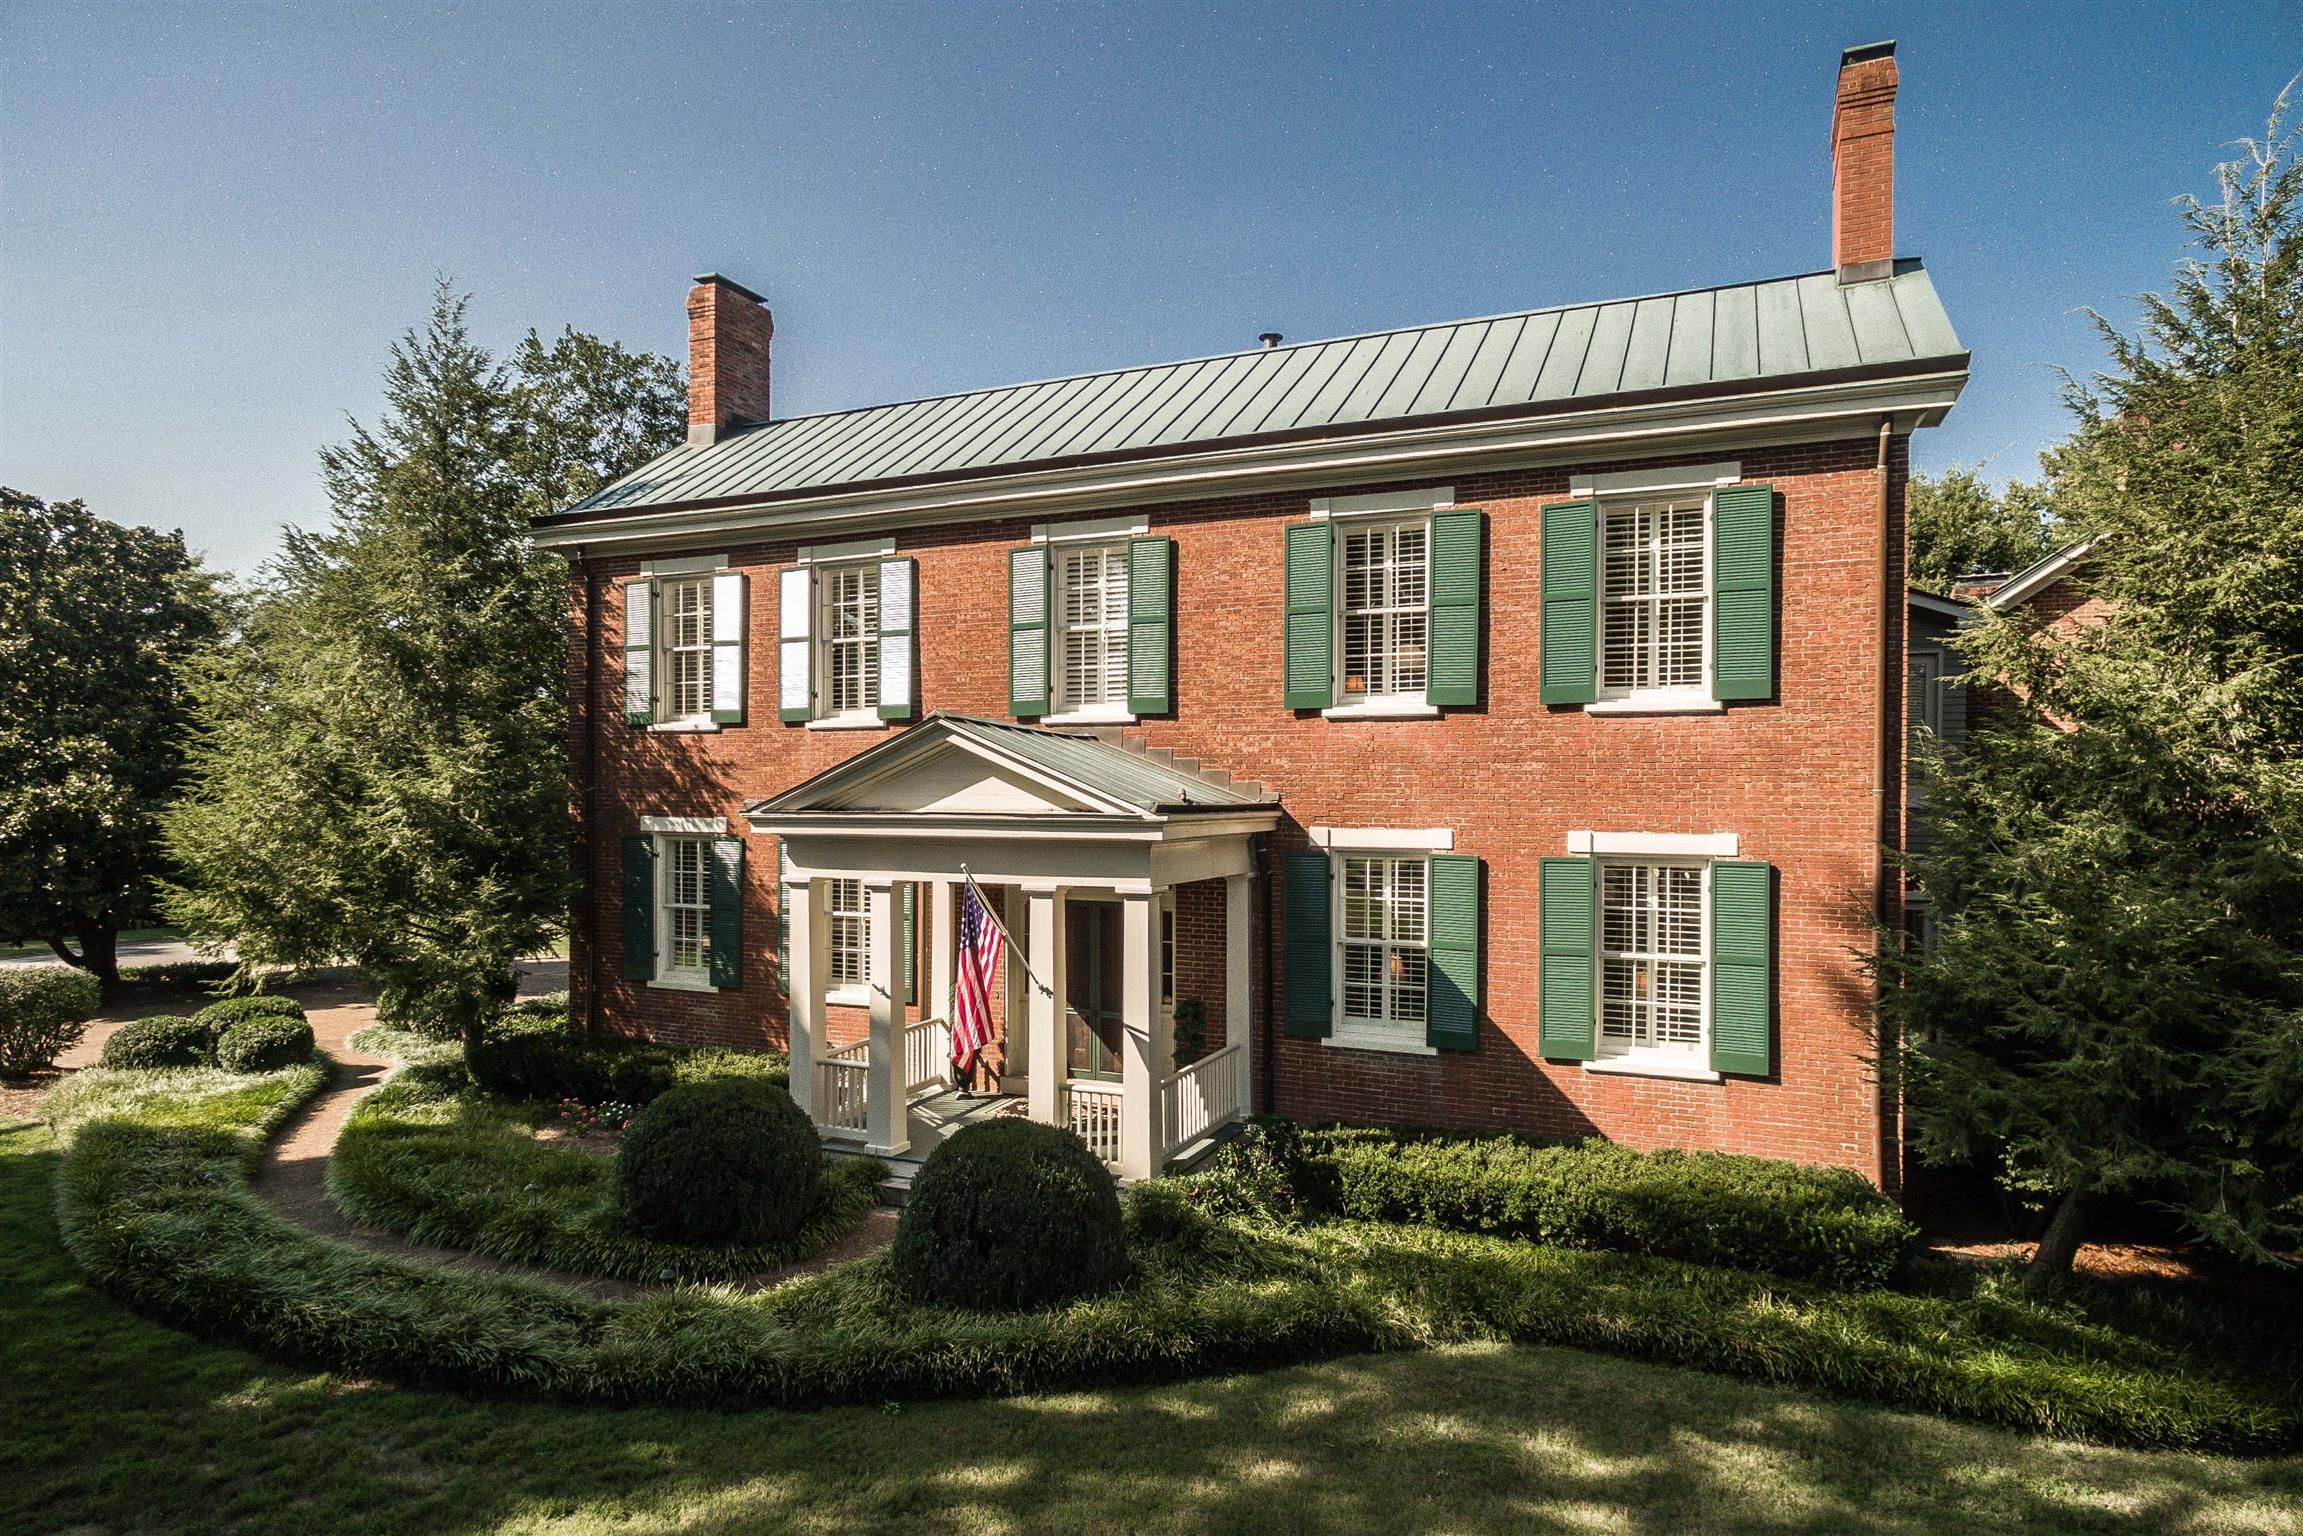 STUNNING ANTEBELLUM HOME IN OLD HICKORY! Just 13 miles from Nashville. In a Lakeside Community, the Shute Turner Plantation House, Circa 1833 is located on land once owned by Andrew Jackson. Typical federal style, 3 bricks thick, 9 fireplaces, Original Poplar Hardwoods, Cherry Cabinetry throughout & 12' ceilings built around a courtyard.